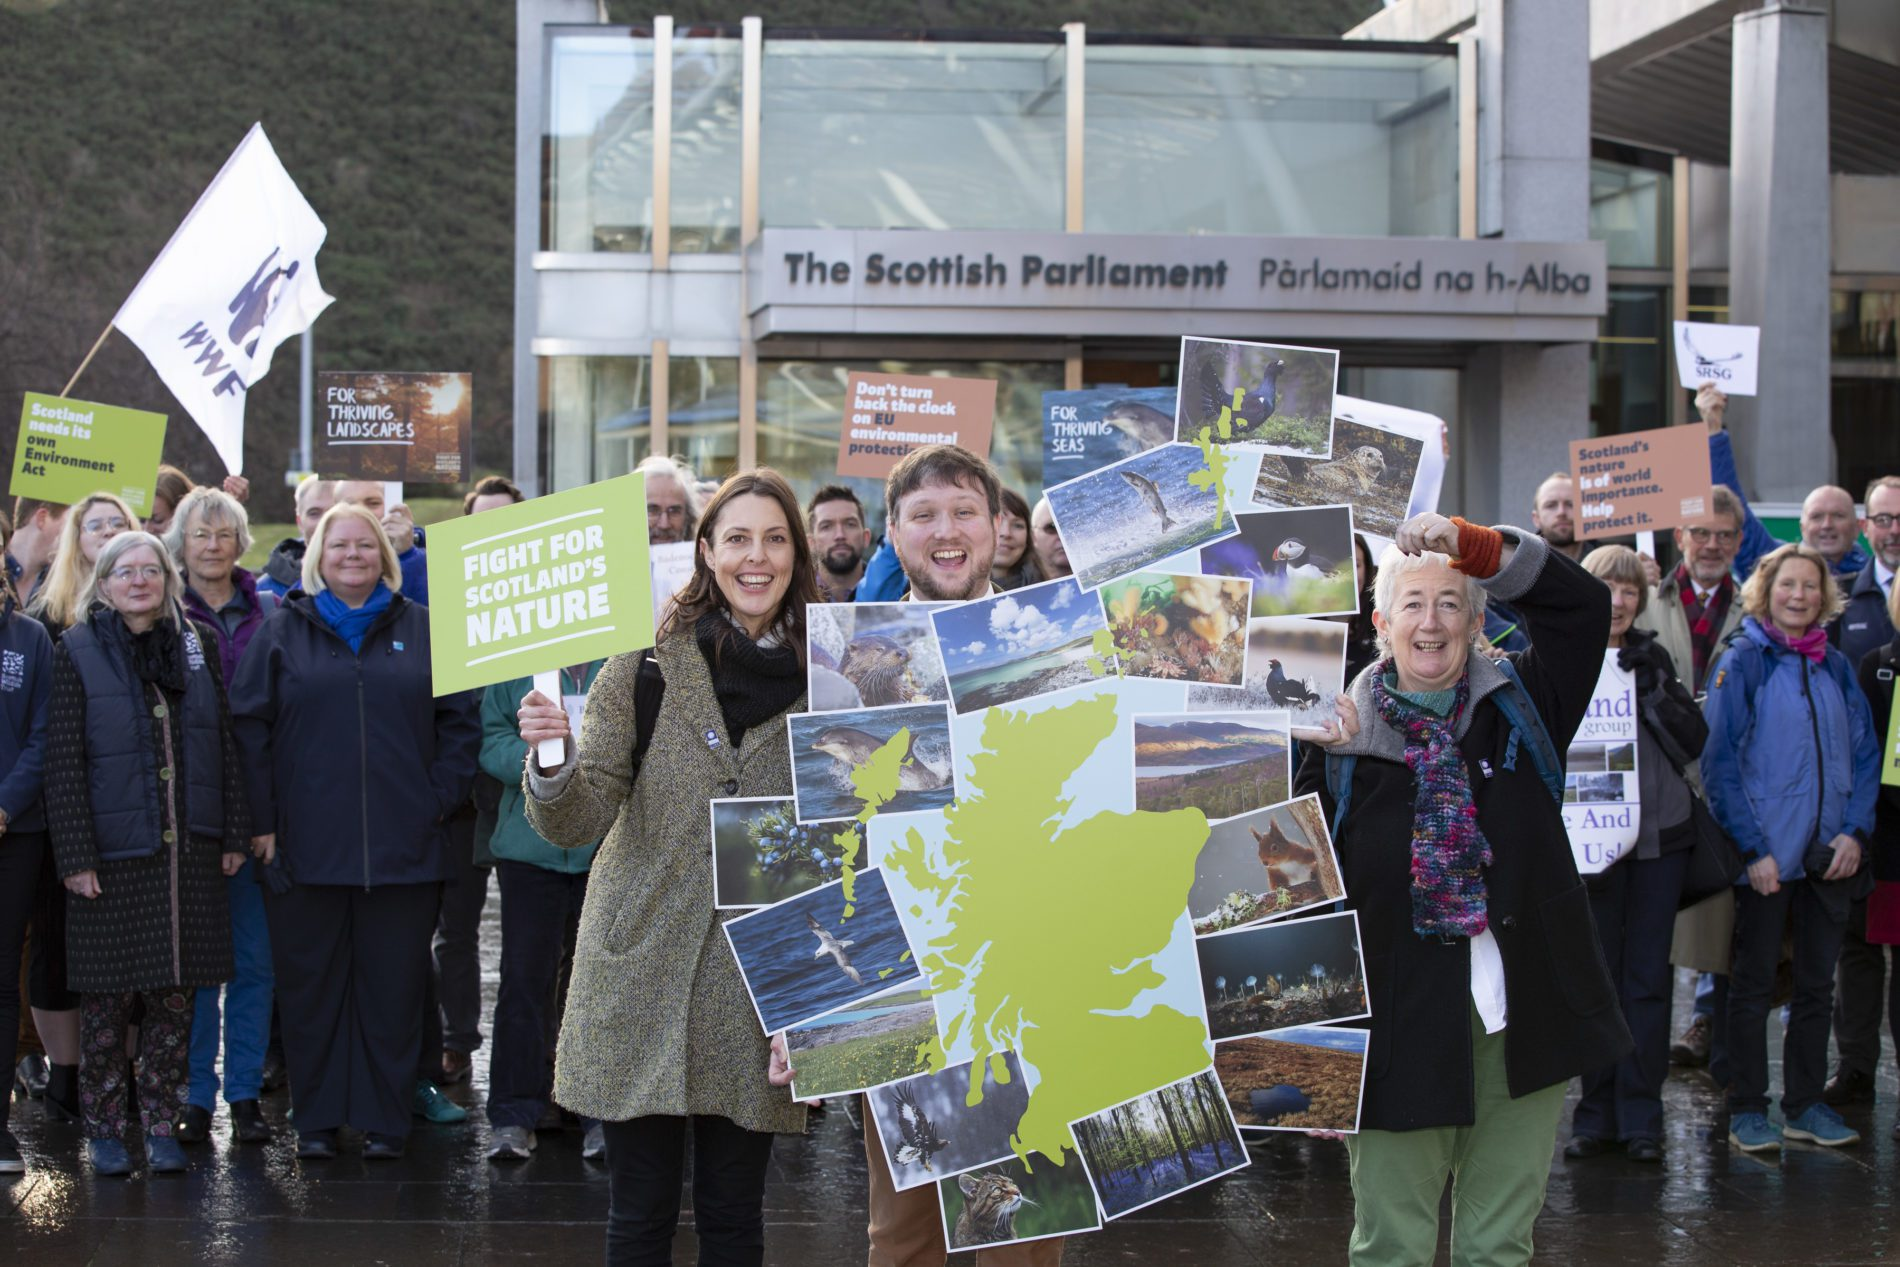 """Scottish Environmental Charities Launch Urgent Bid for an Environment Act for Scotland  Pictured Scottish Environment LINK members call for an urgent Environment Act for Scotland at The Scottish Parliament today.     Scottish Environment LINK, a coalition of Scotland's leading environmental charities will today launch an urgent campaign, """"Fight for Scotland's Nature"""" at the Scottish Parliament. Together they will call for Scotland to have its own environment act.   Fears sparked by Brexit as well as mounting evidence of the global ecological crisis also heavily impacting Scotland has prompted the charities to join forces and urge the Scottish Government to commit to a dedicated Environment Act for Scotland that protects and enhances Scotland's nature, now and in the future.   80% of all Scotland's environmental laws come from the EU. The combination of strong legislation and support for effective implementation has made these laws among the most effective on Earth. Further, Scotland's nature has been a net beneficiary of the EU's LIFE Nature fund which alone has supported conservation projects worth well over 25 million Euros to date.     If and when Brexit happens, Scotland (along with the rest of the UK) will lose the unrivalled support and enforcement roles of the European Commission, European Court of Justice and other EU bodies. Alarmingly, with only a few months to go, there is uncertainty about what will replace this.   This is why Scottish Environment LINK is pushing the Scottish Government to fight for Scotland's nature and commit to a world class environment act before it's too late. Ahead of global 2020 targets on halting biodiversity loss, it is important that Scotland sends a clear message to the world that our environmental protections are not up for grab.   Joined up legislation in the form of a Scottish Environment Act, that is fit for purpose and caters to Scotland's unique environmental needs is required for this to be meaningful.   Scotland may be"""